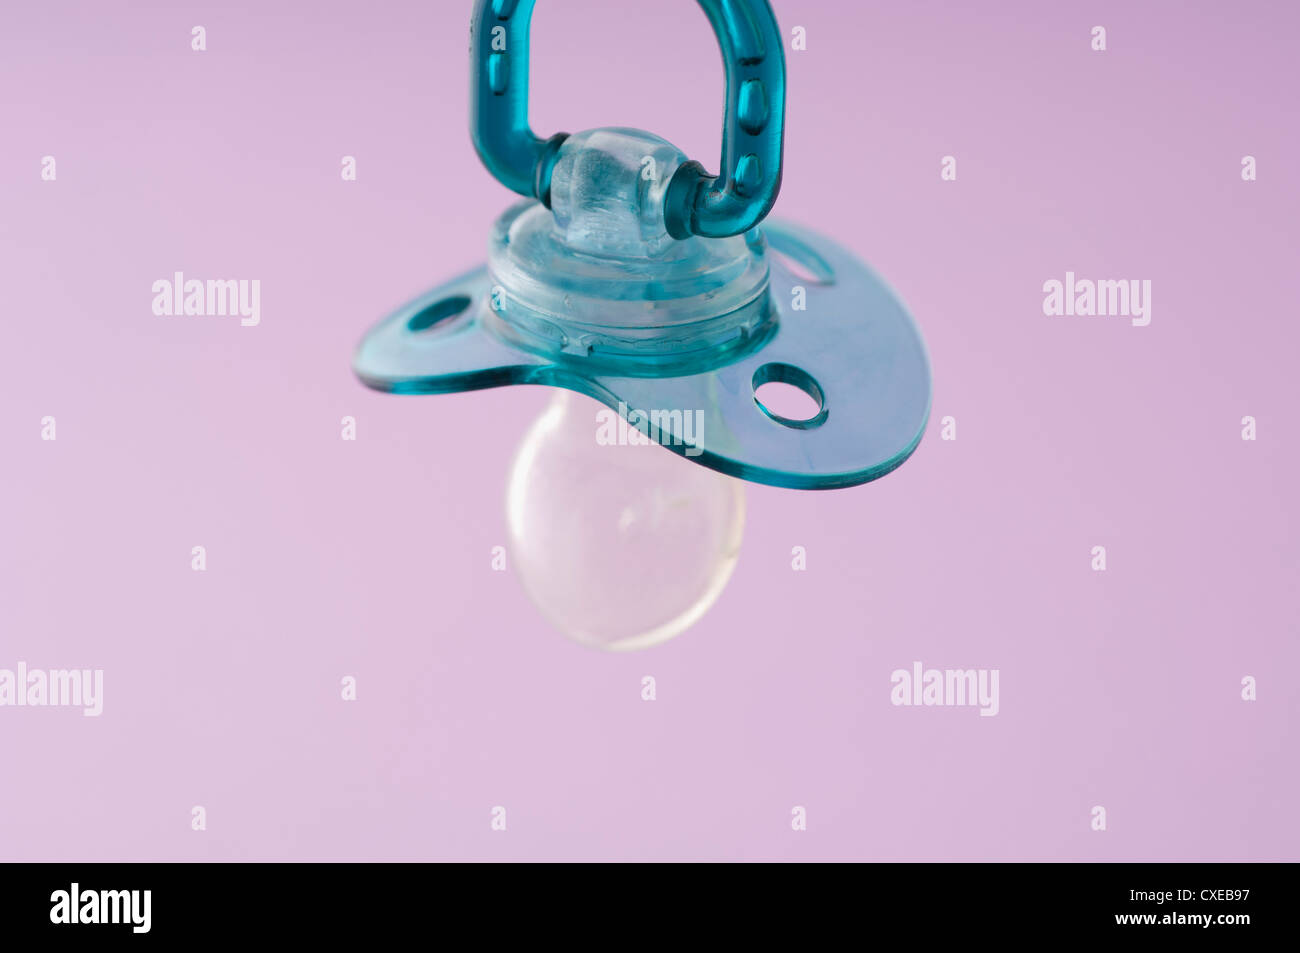 Baby pacifier - Stock Image